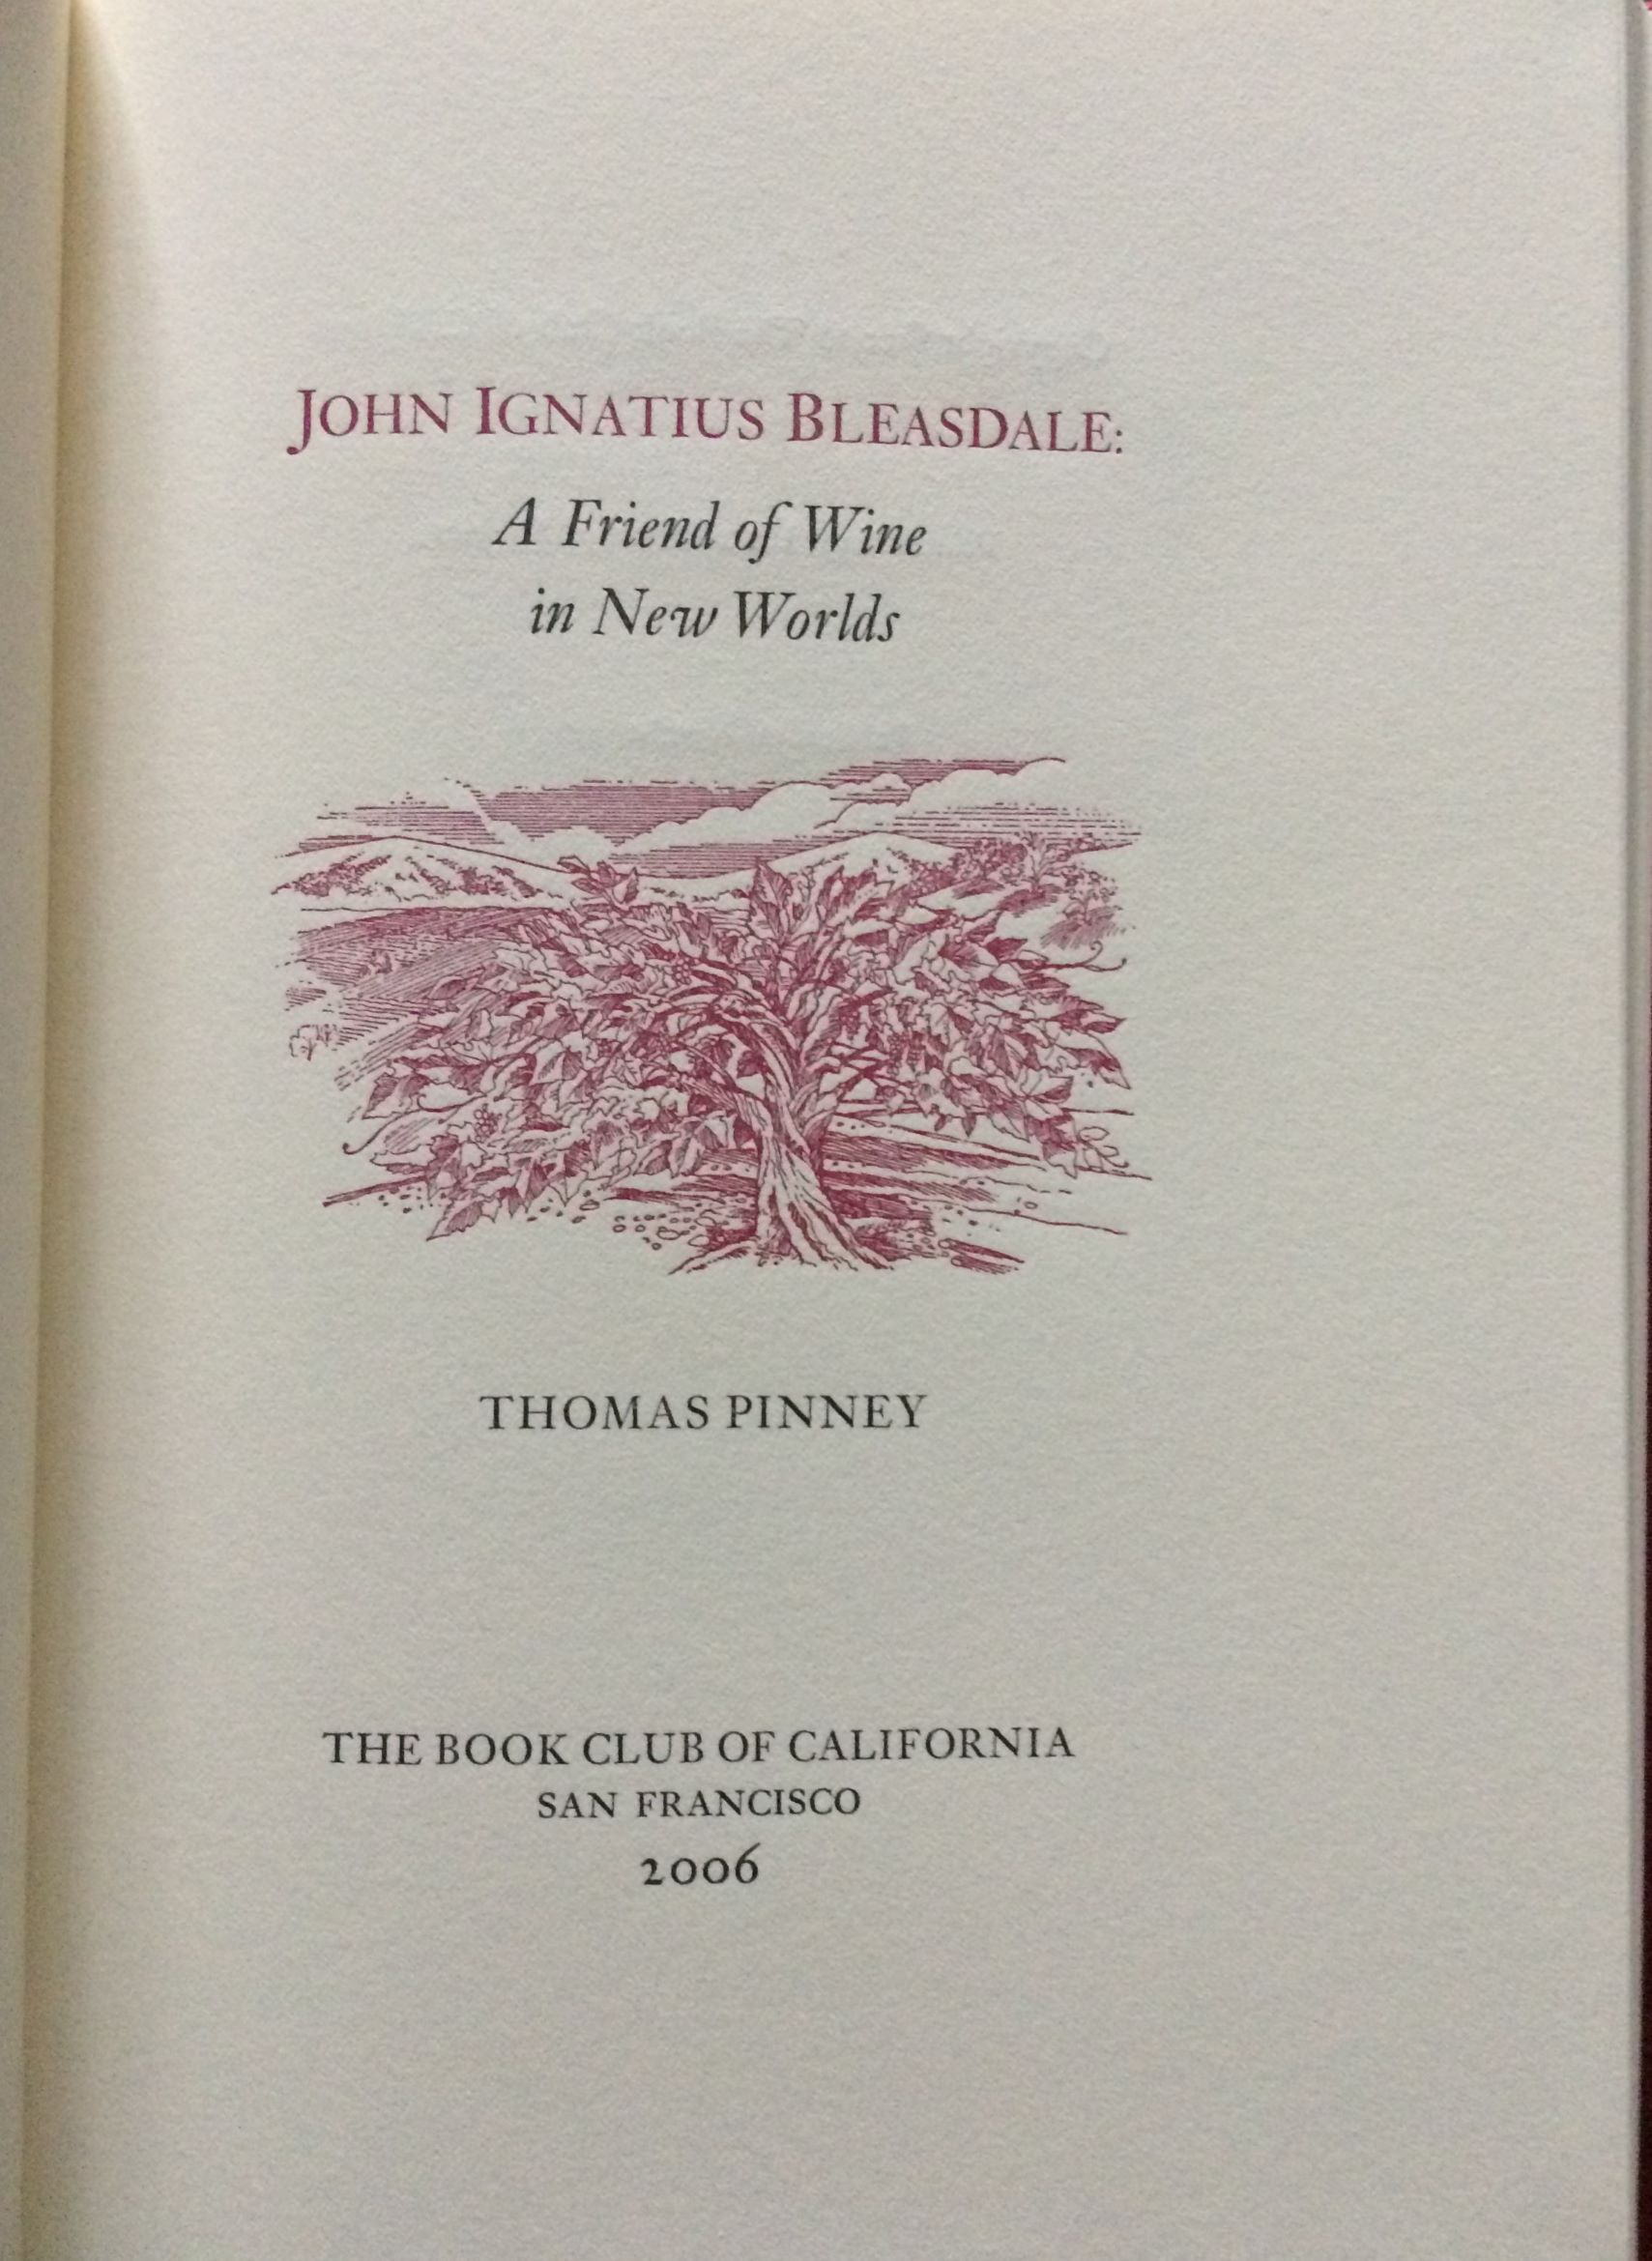 Image for John Ignatius Bleasdale: A Friend of Wine in New Worlds.